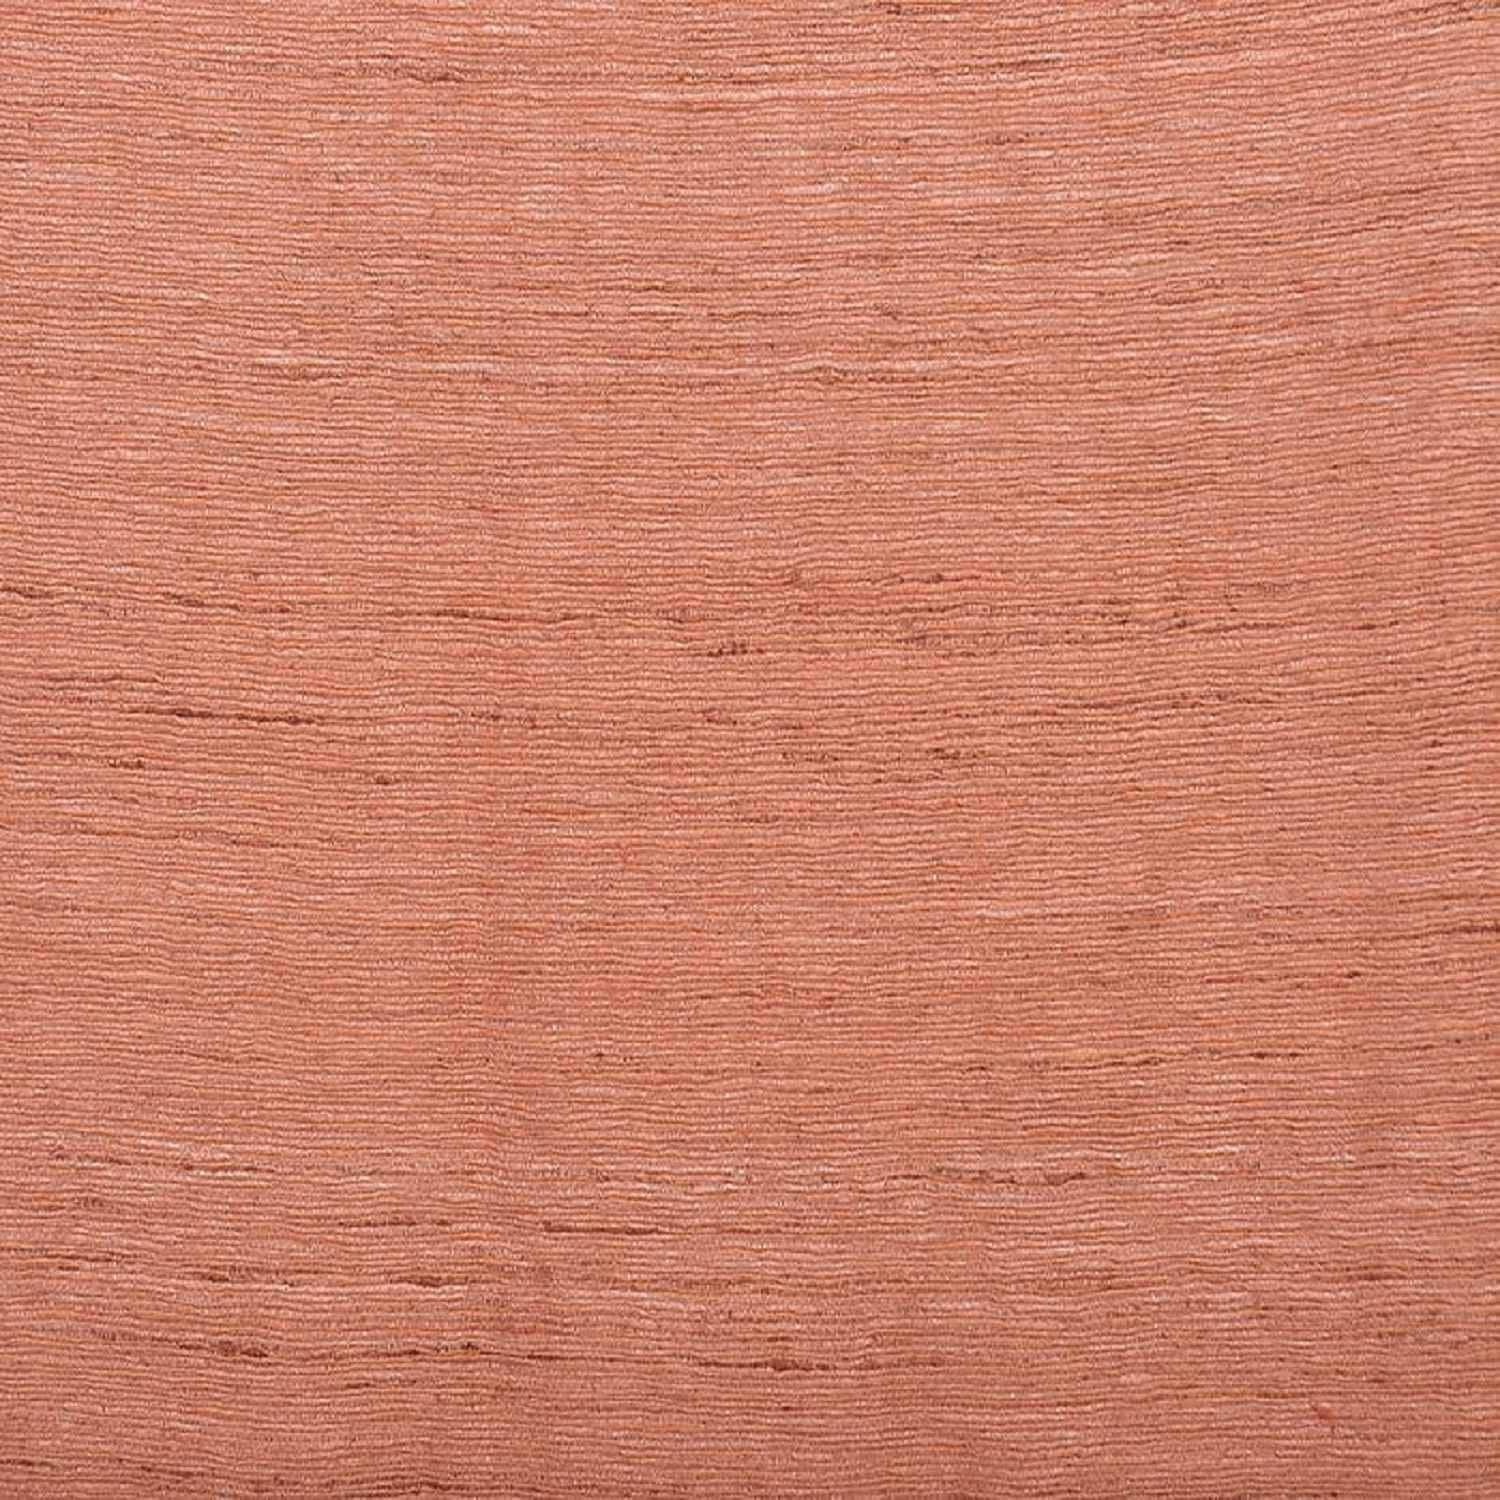 Terracotta Raw Silk Swatch